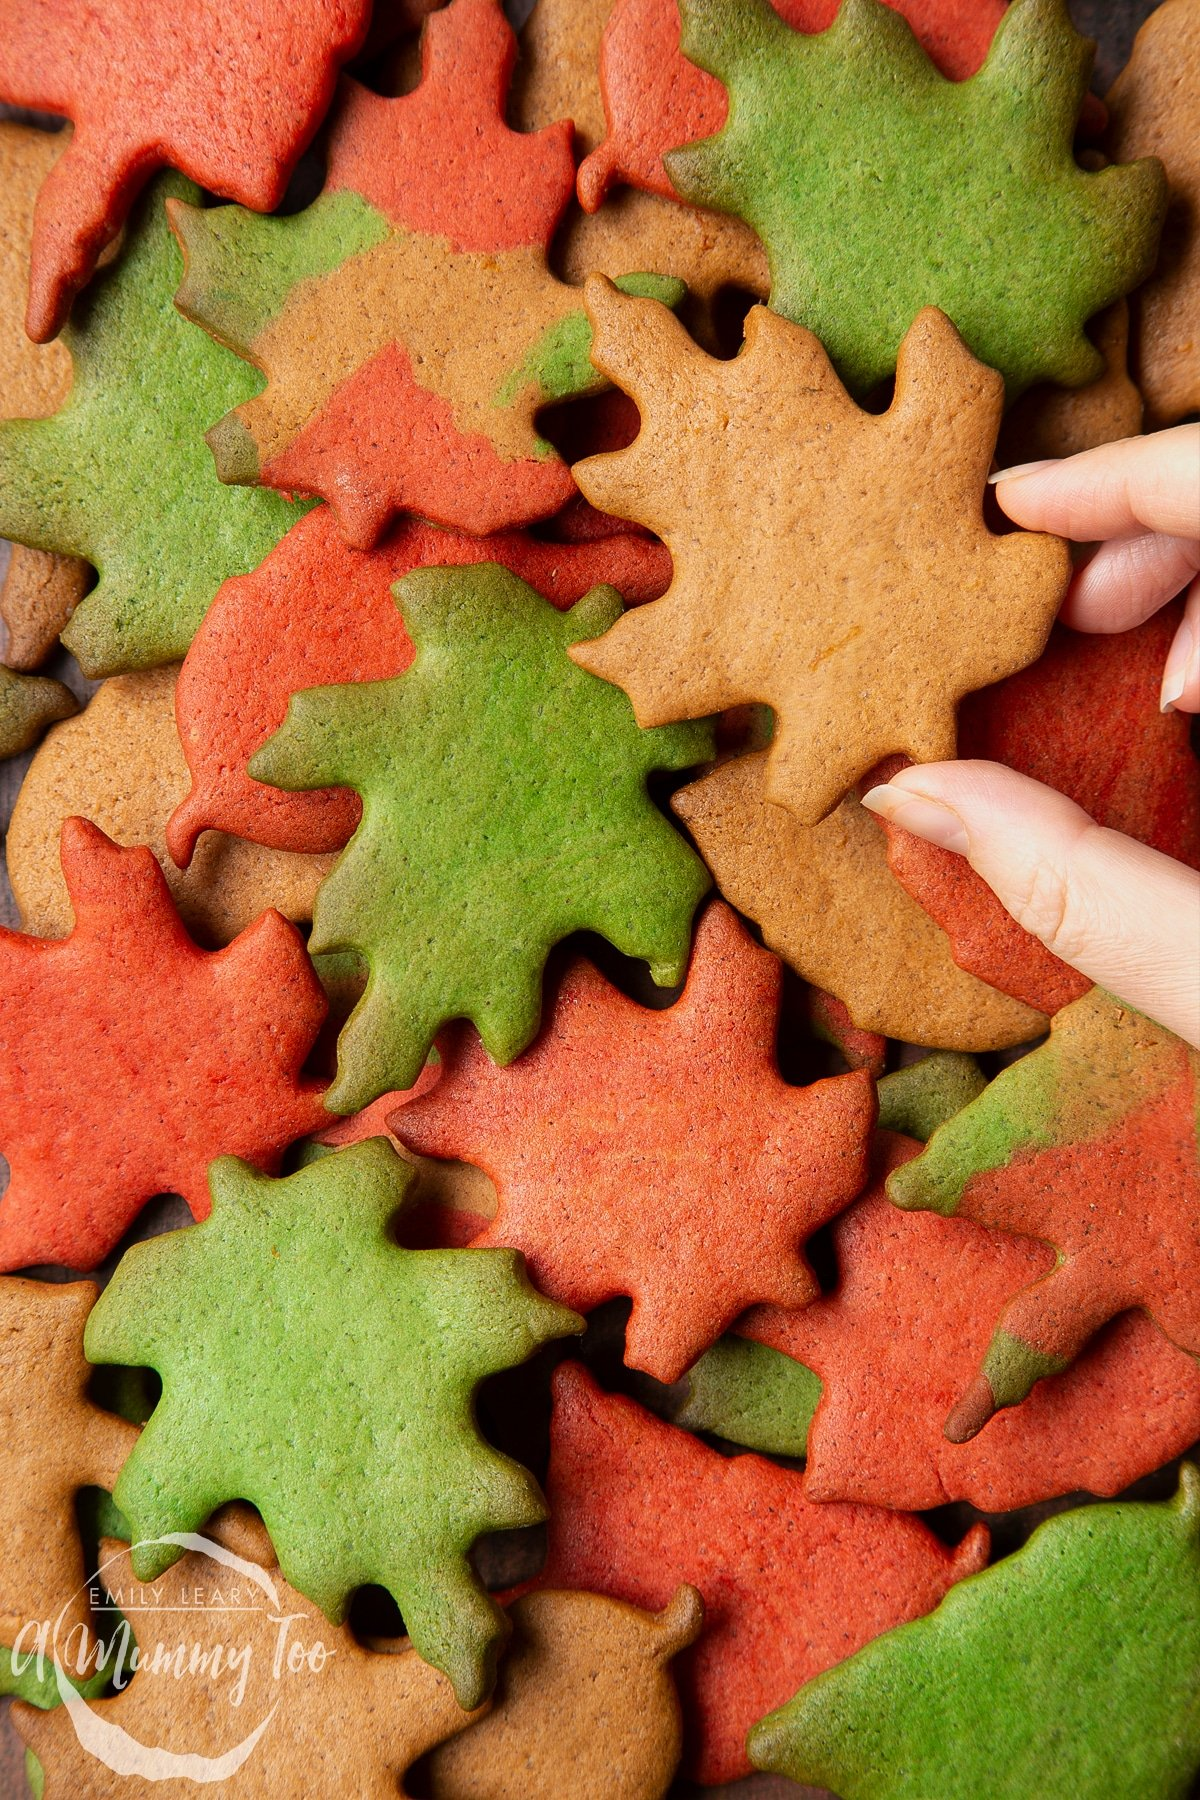 A pile of colourful red, green and brown autumn cookies cut into the shapes of autumn leaves. A hand reaches to take one.